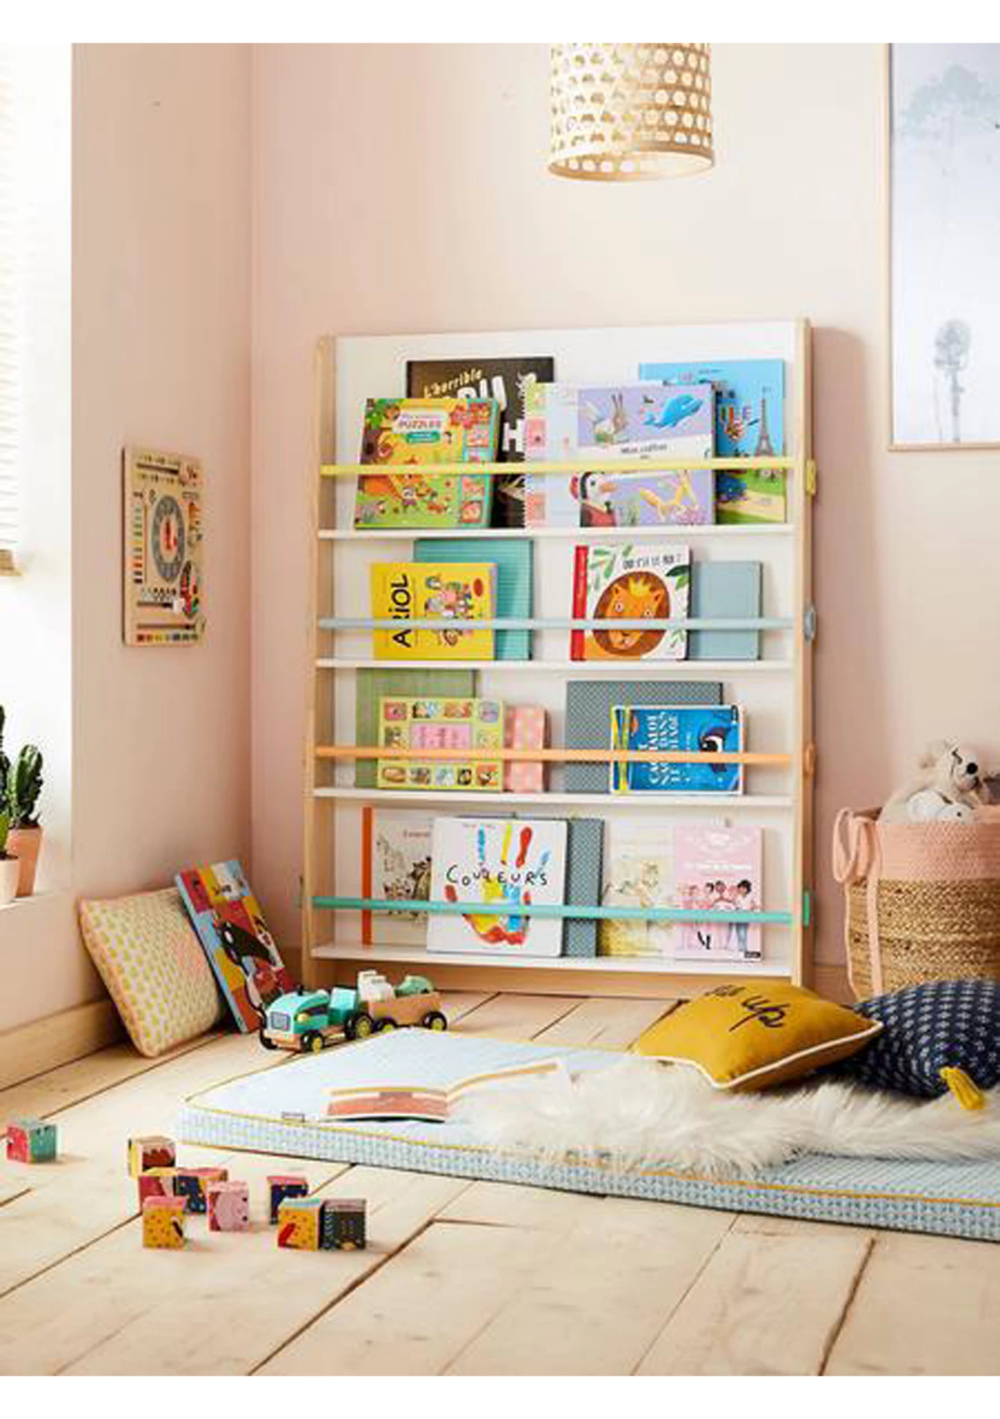 Mini Me The Bookshelf Bookshelves Kids Bookshelves Furniture Nz